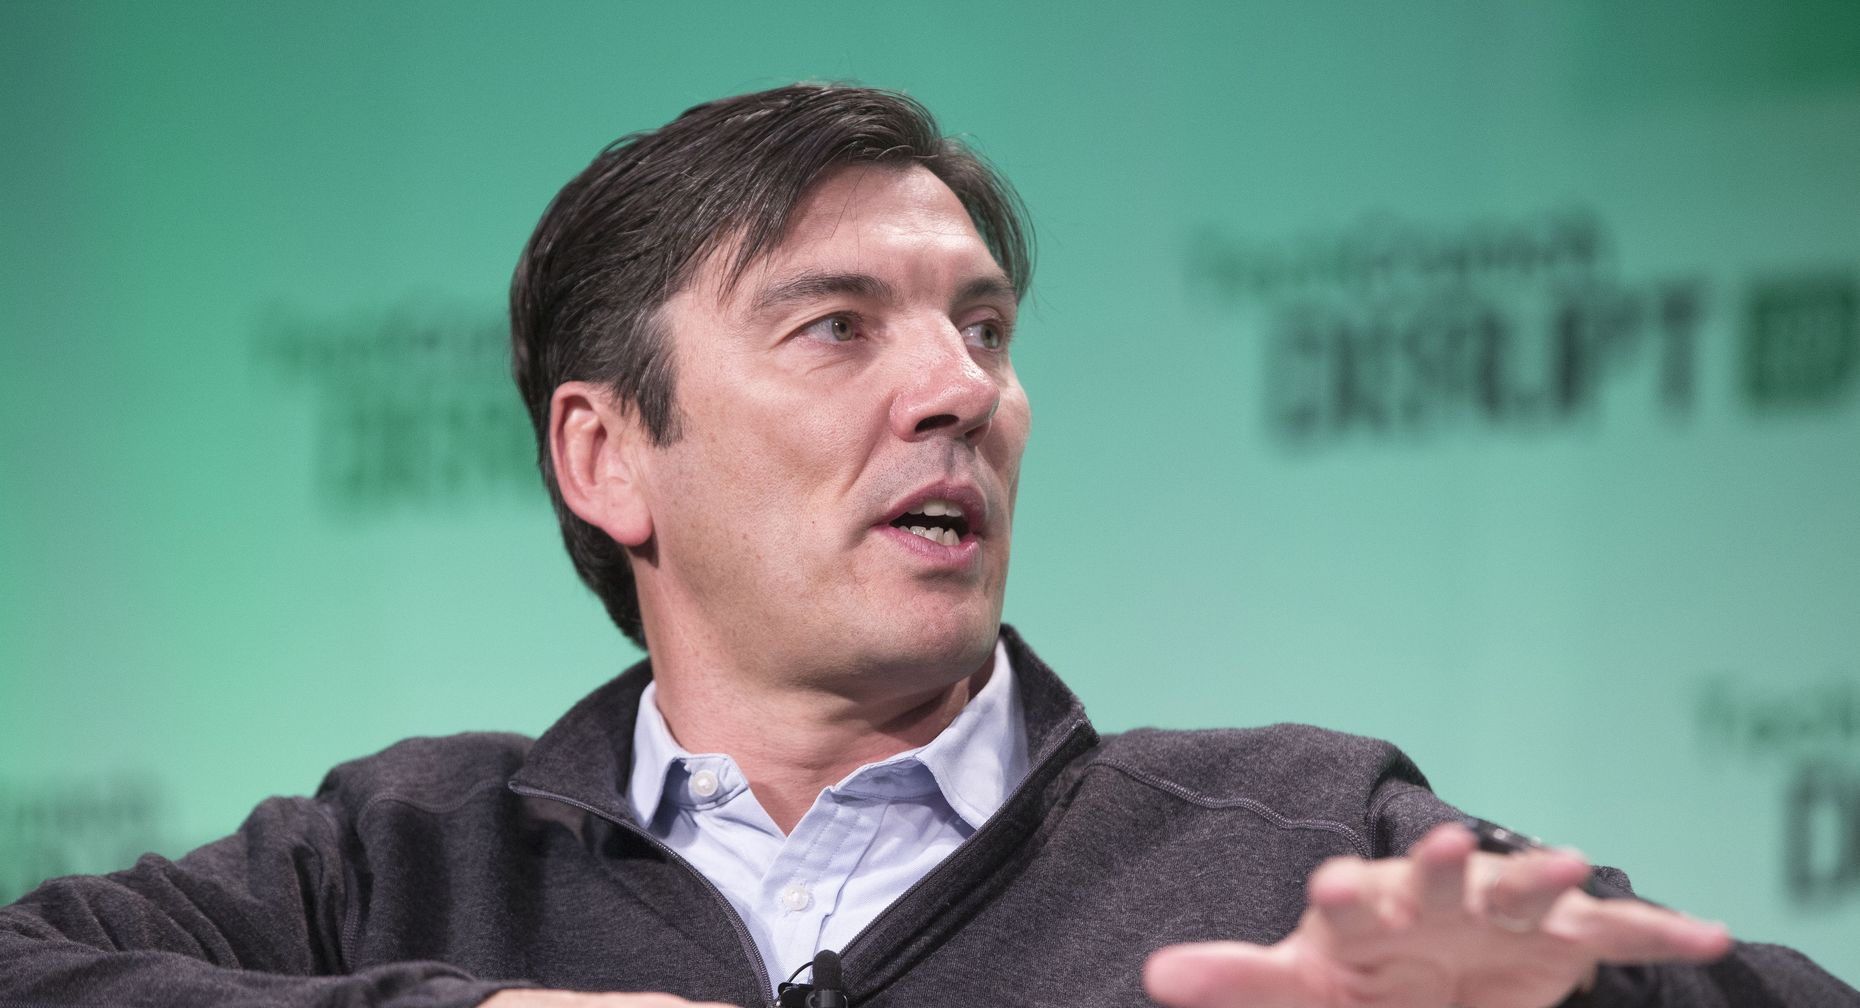 AOL CEO Tim Armstrong. Photo by Bloomberg.